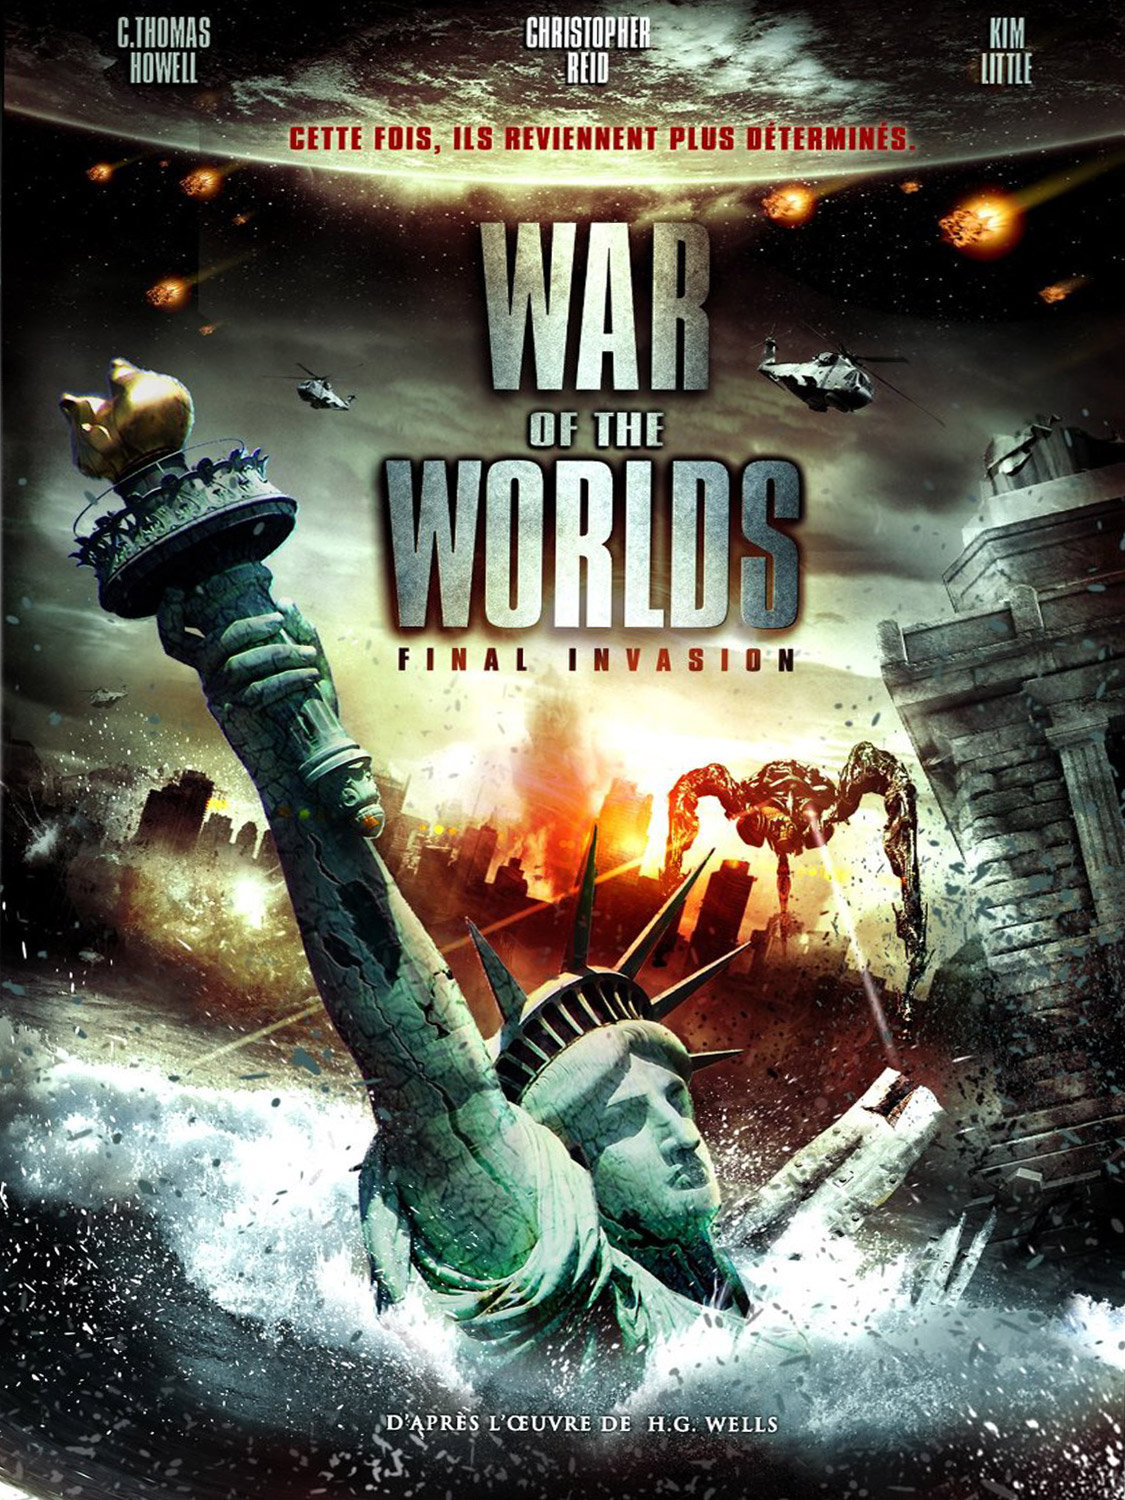 War of the World : Final Invasion (2012) [FRENCH] [DVDRiP] [MP4] [RG][TB]